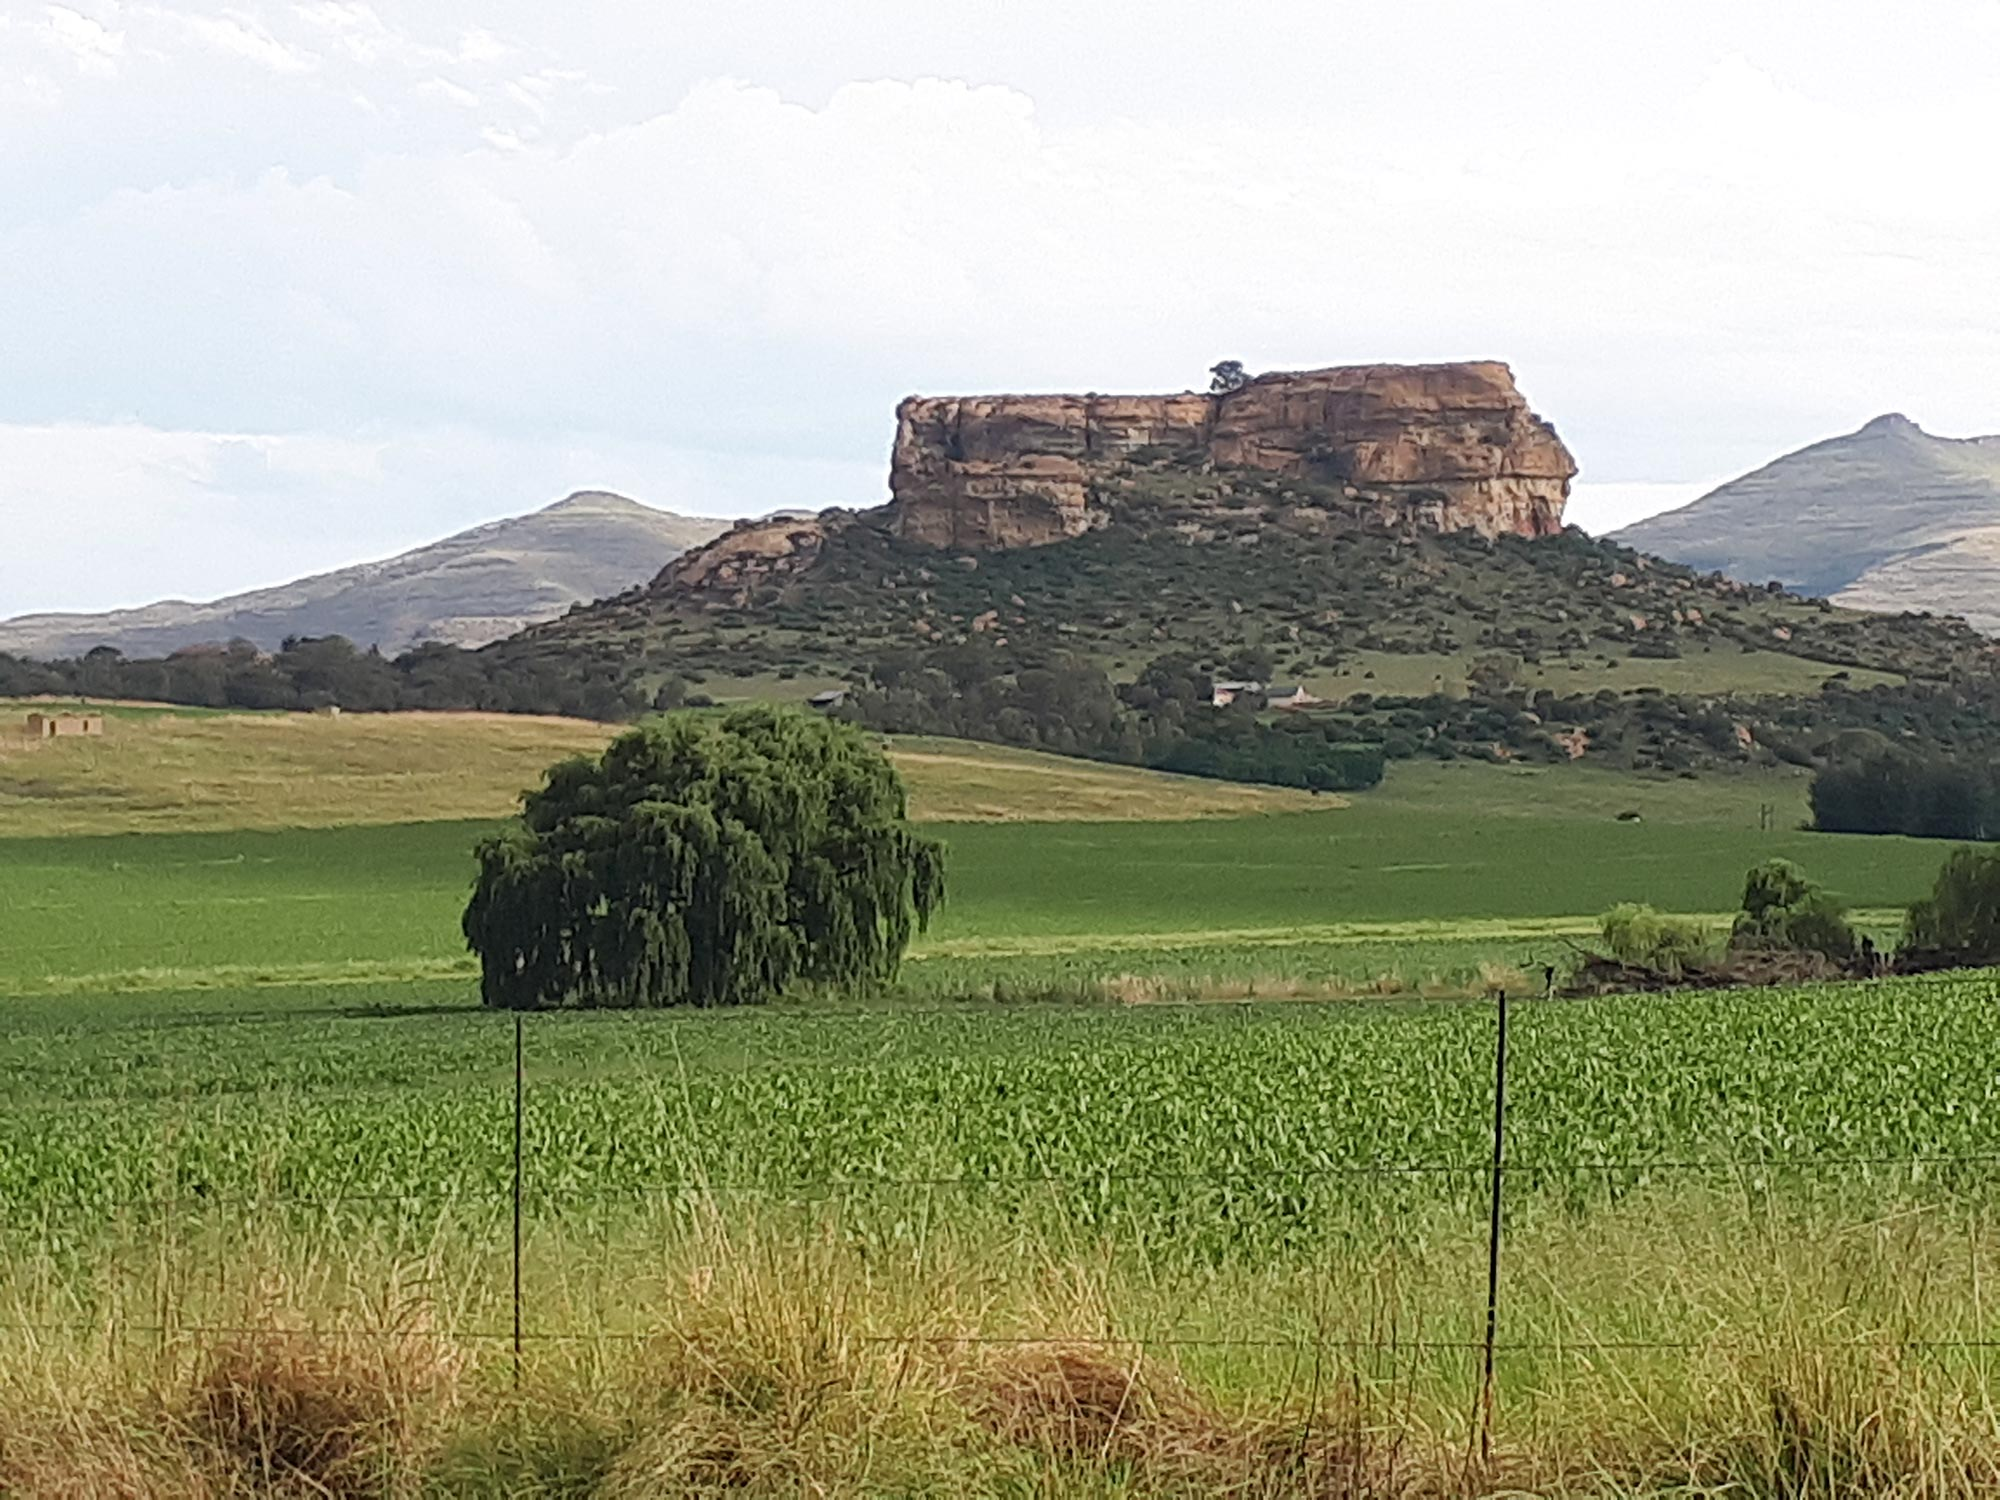 Lush Festival has a spacious new home in Clarens